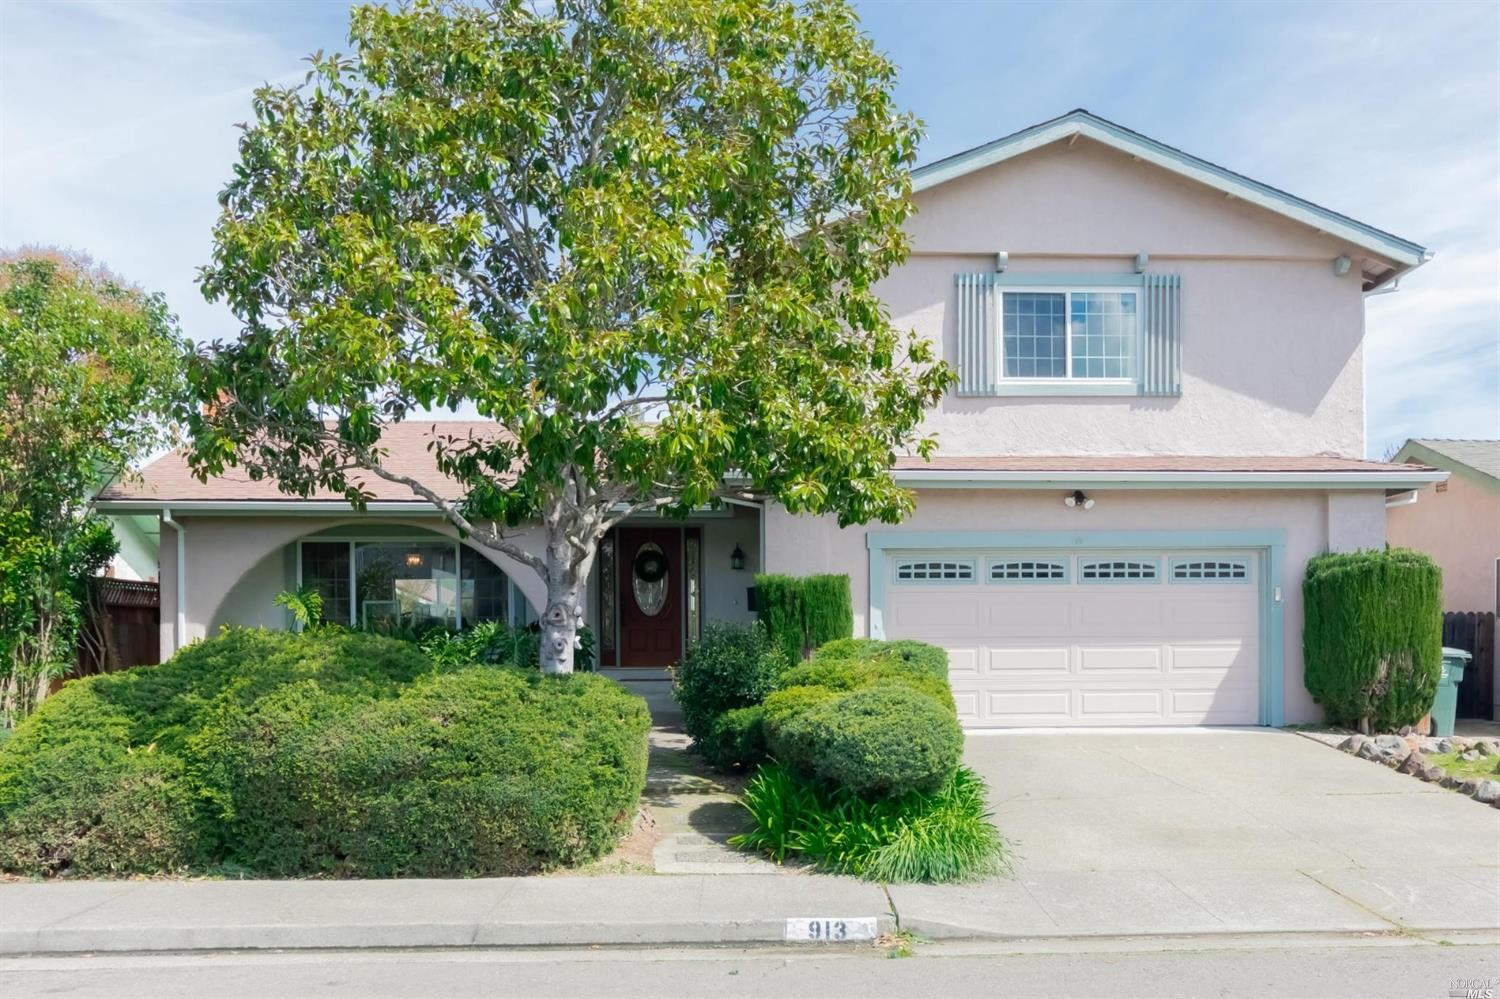 Photo of 913 Pinewood Court, Petaluma, CA 94954